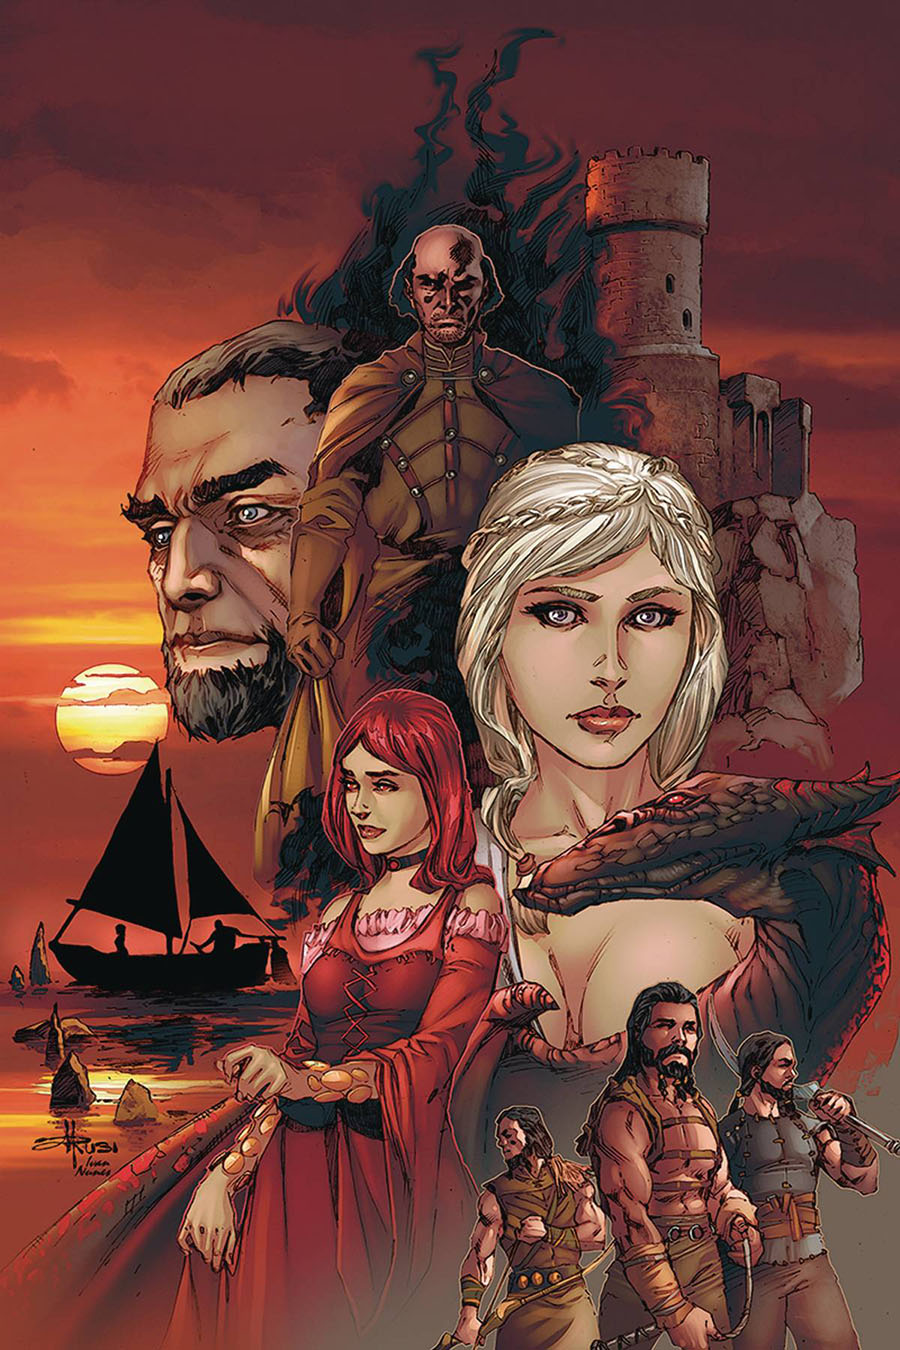 Game Of Thrones Clash Of Kings Vol 2 #4 Cover C Incentive Mel Rubi Virgin Cover